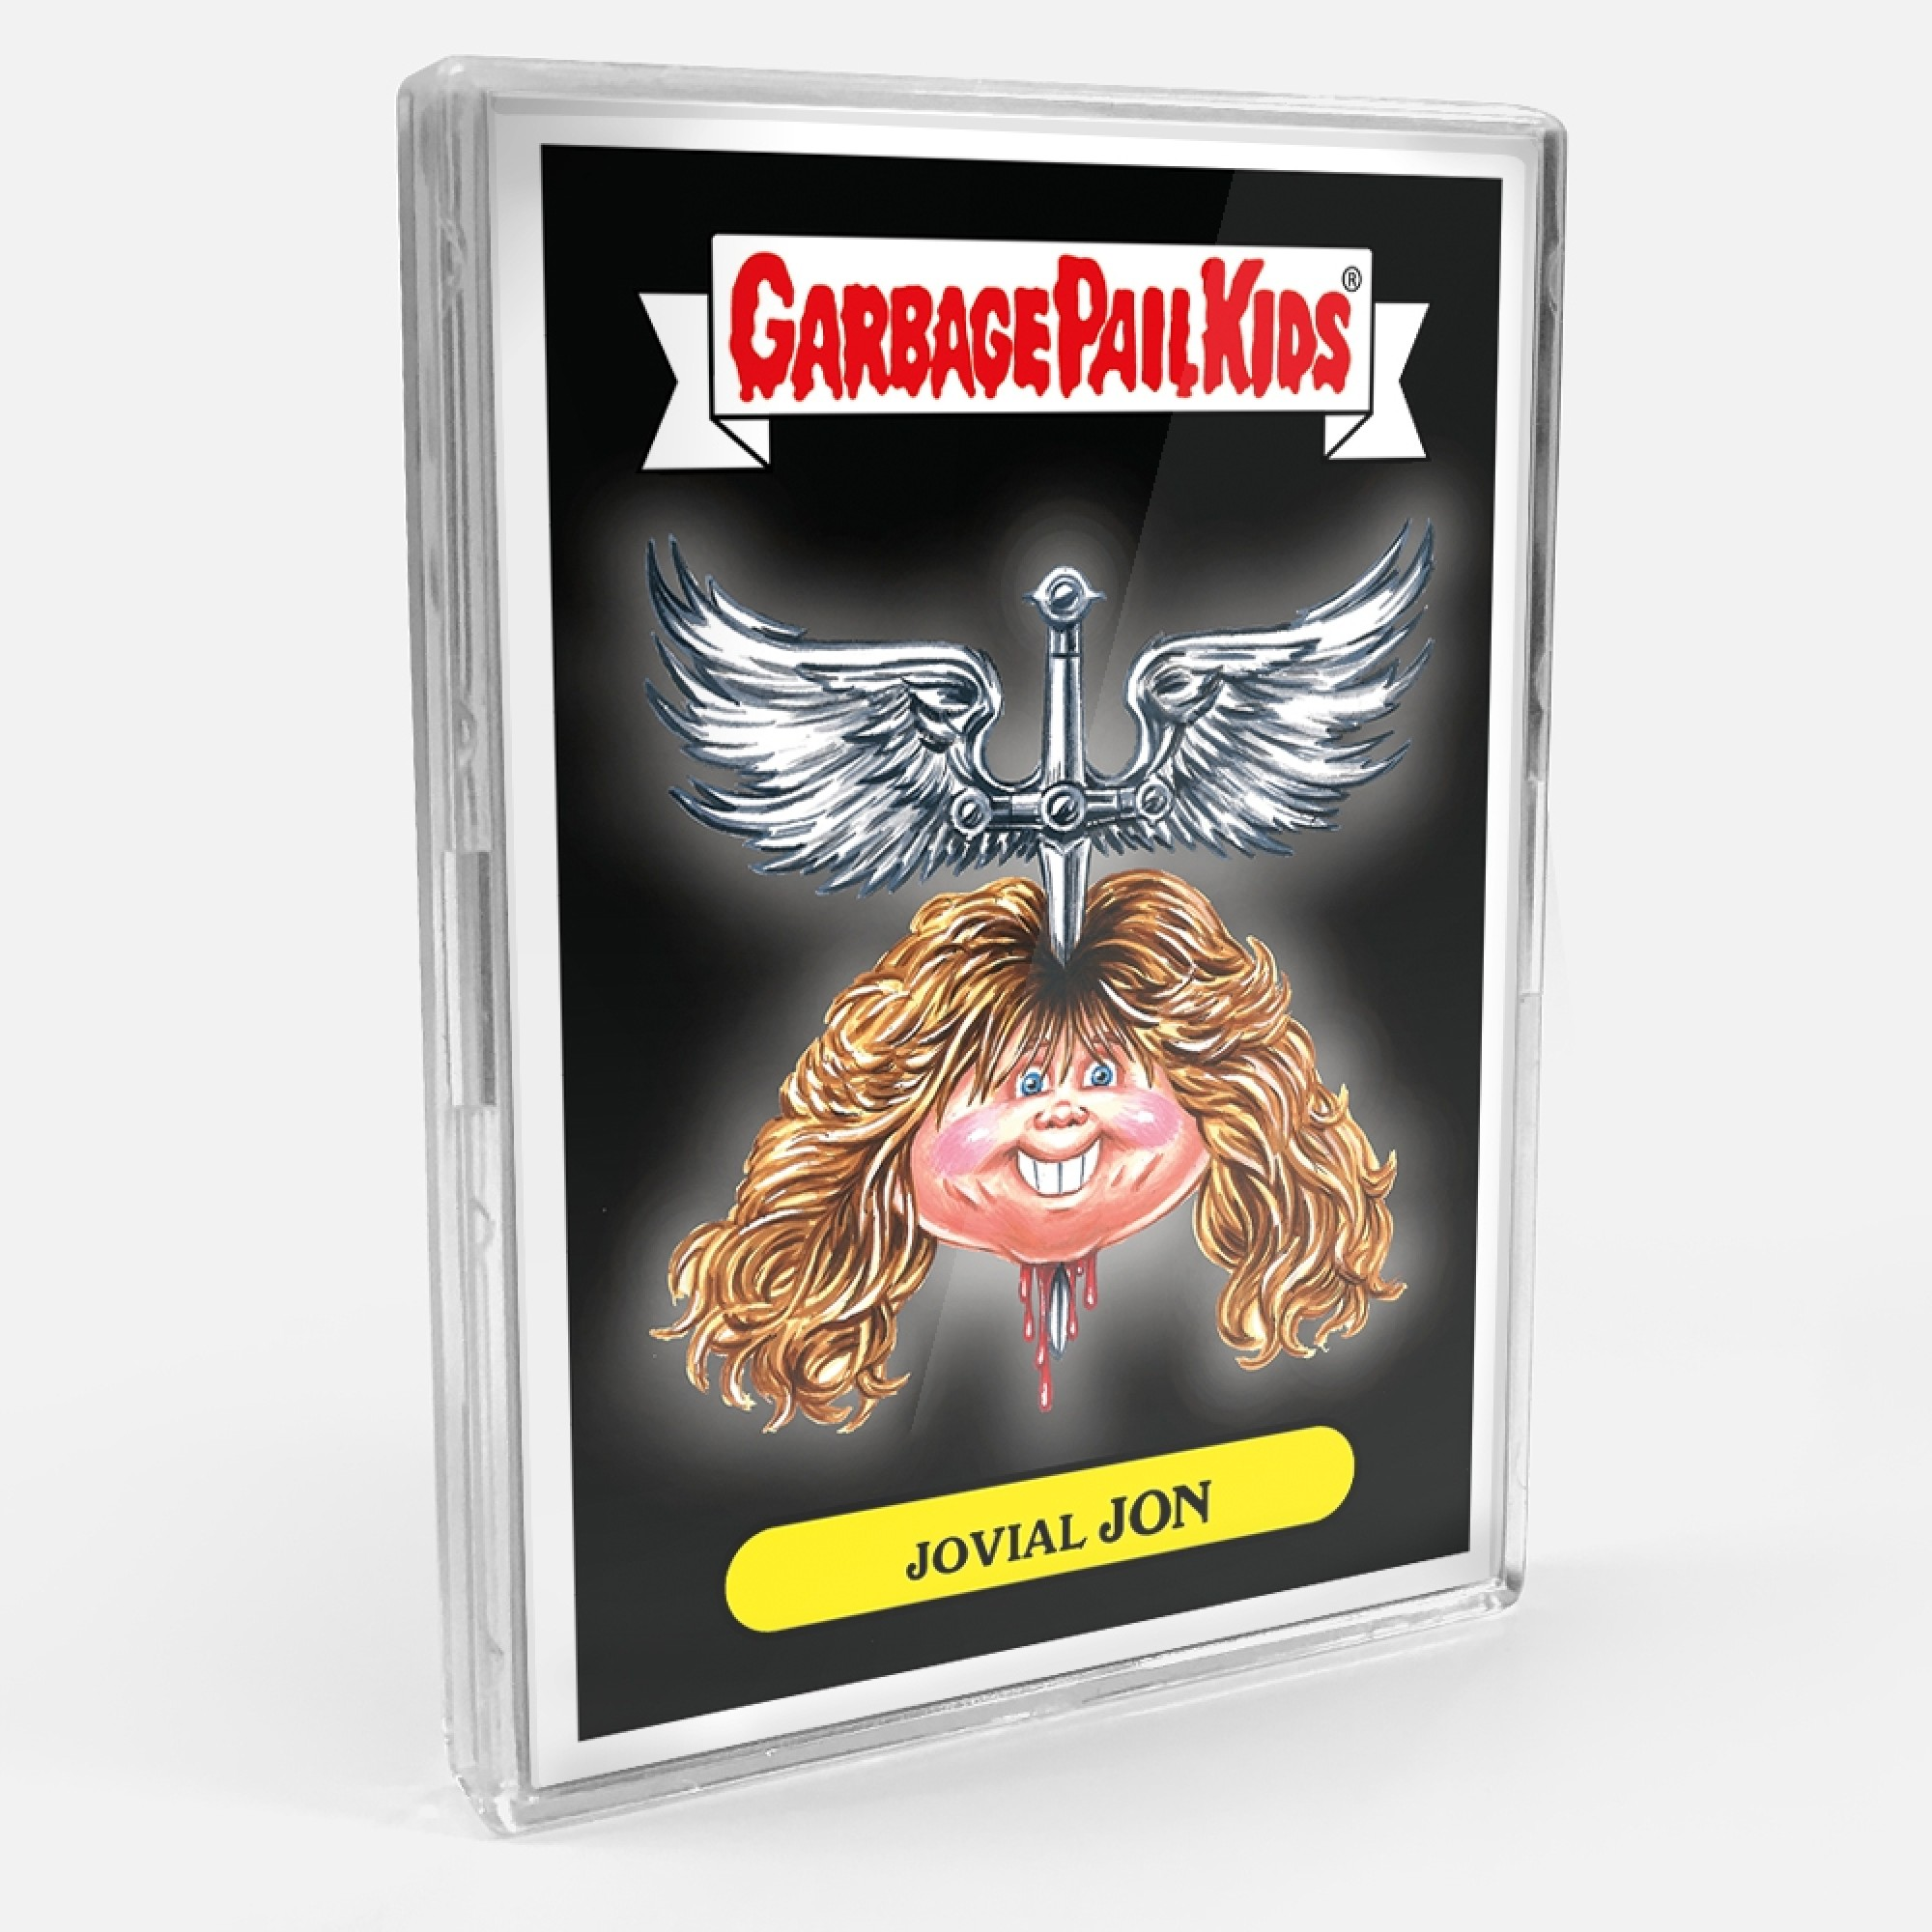 b9ff0d5e99a Topps today launched their annual ode to the music s biggest acts. Today  Topps Launches 2018 Garbage Pail Kids Rock   Roll Hall of Fame online set.